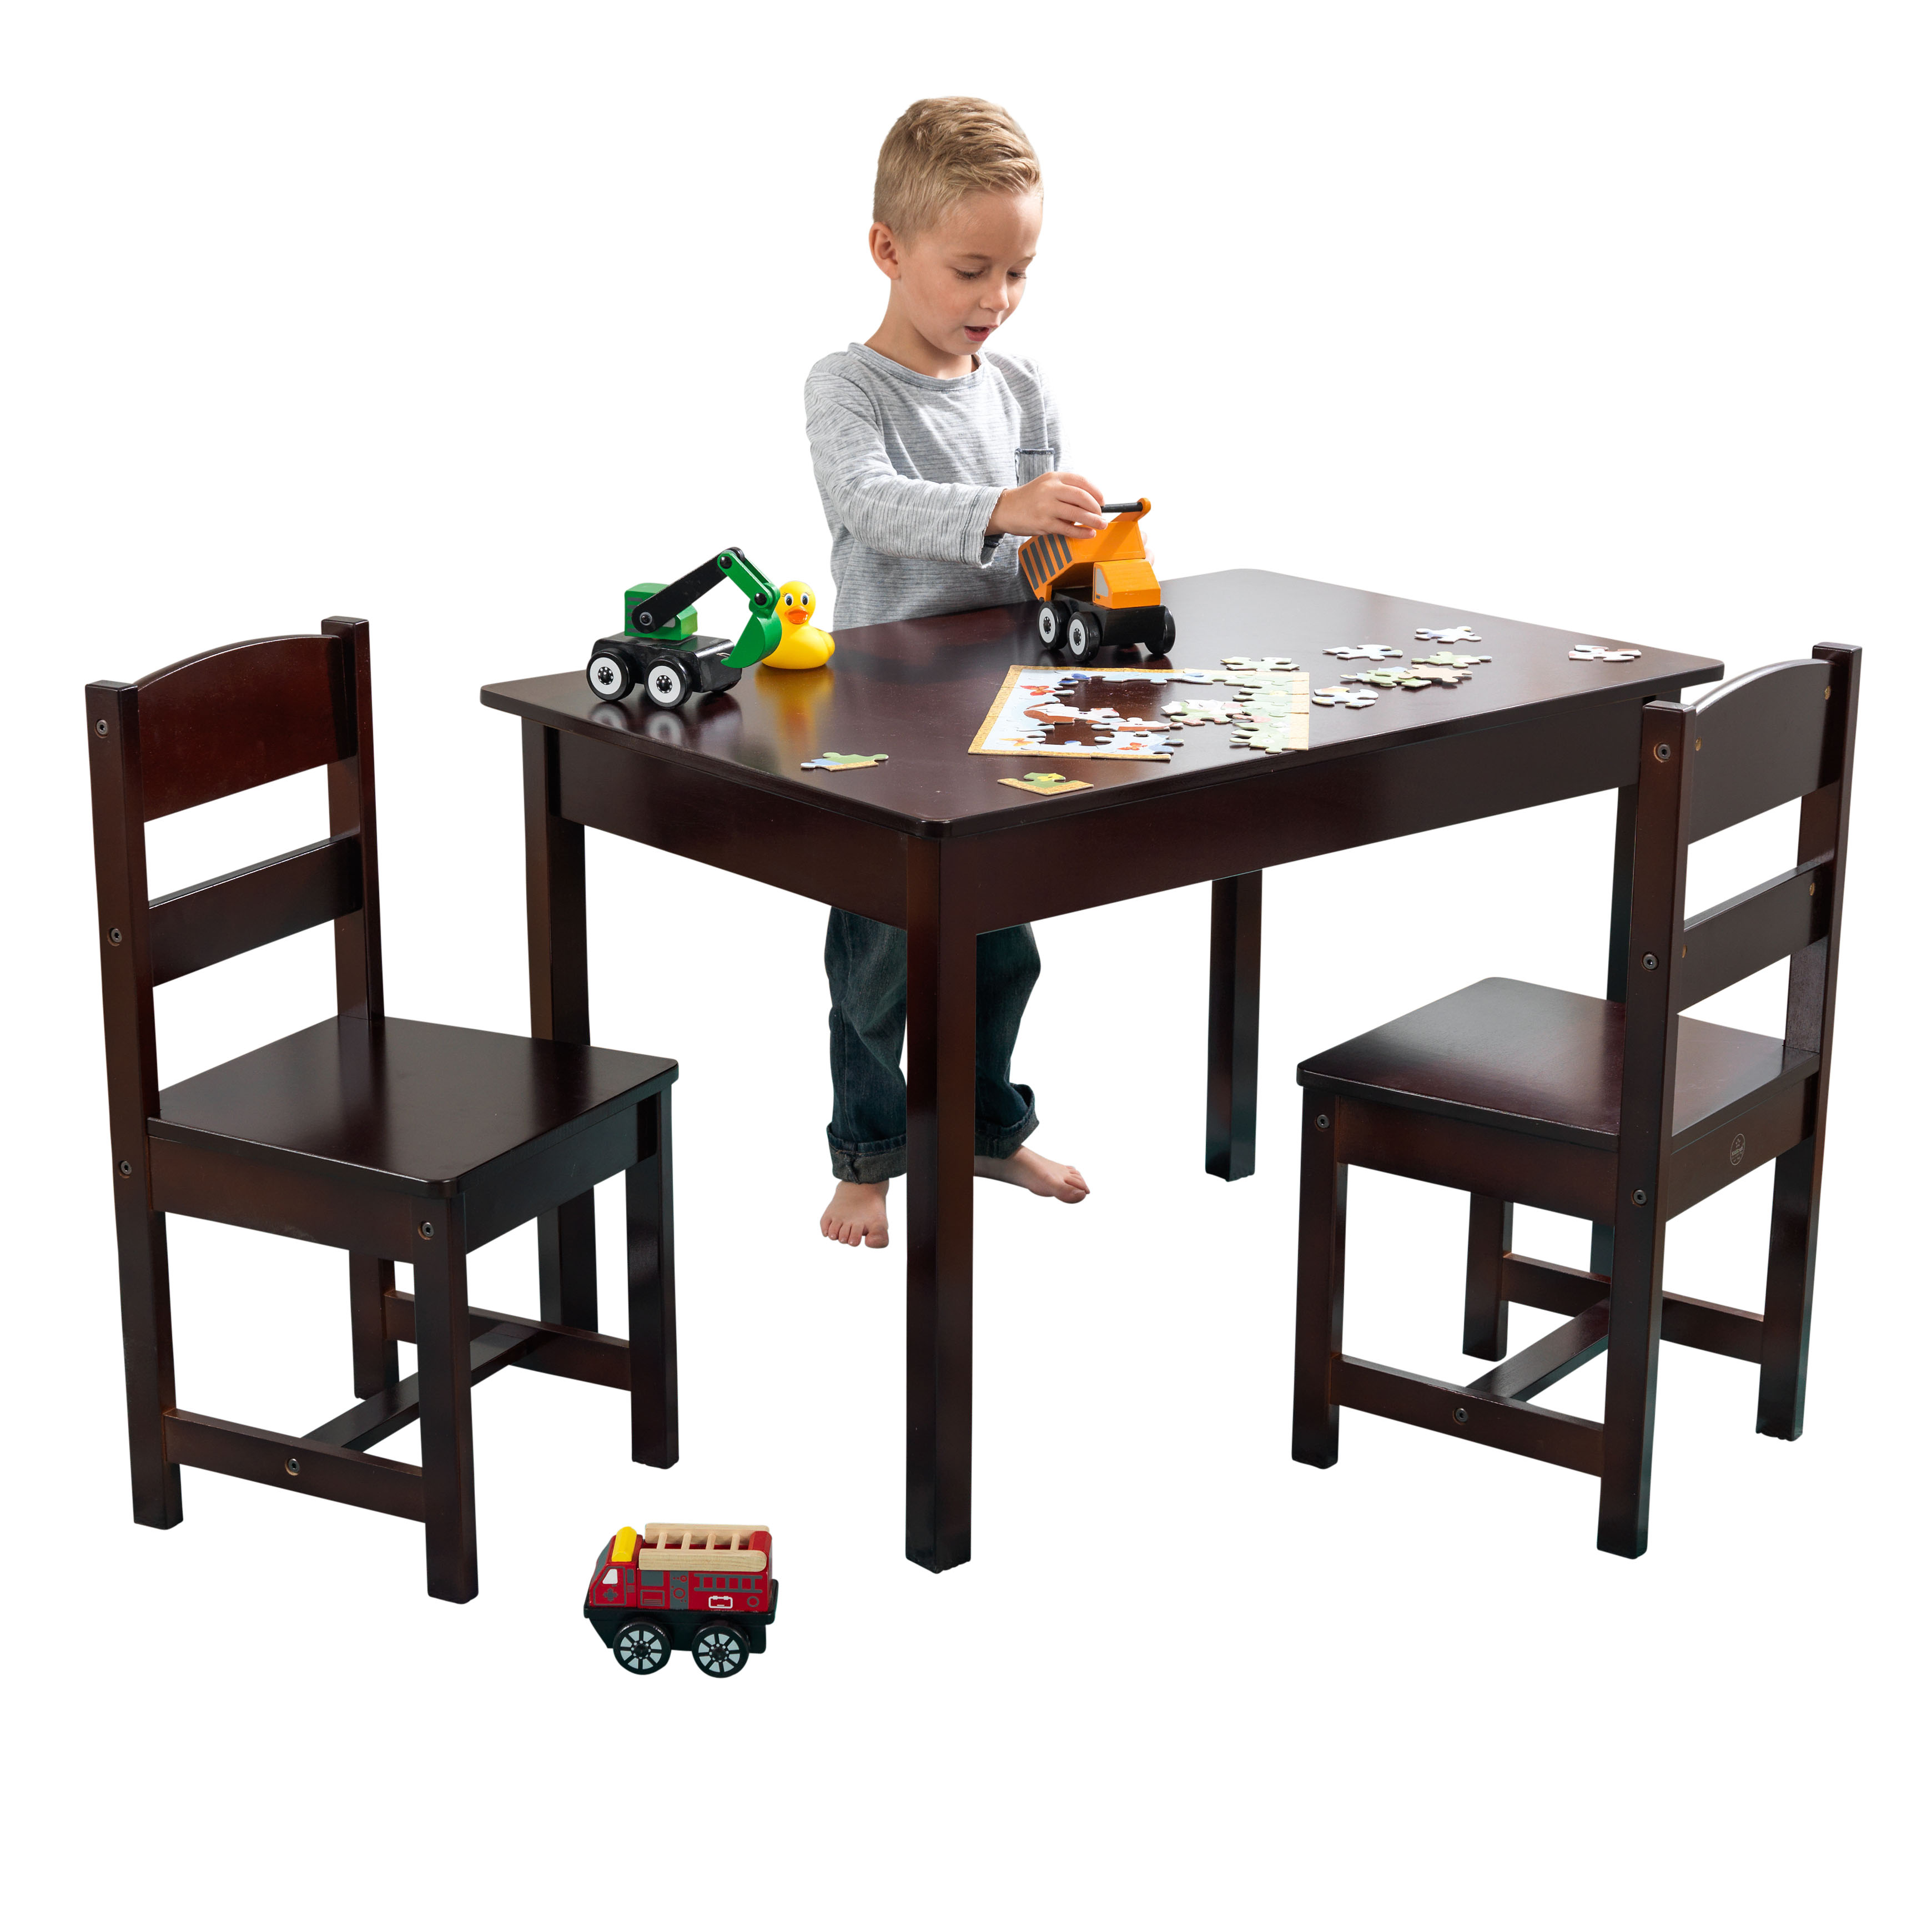 KidKraft Rectangle Table & 2 Chair Set